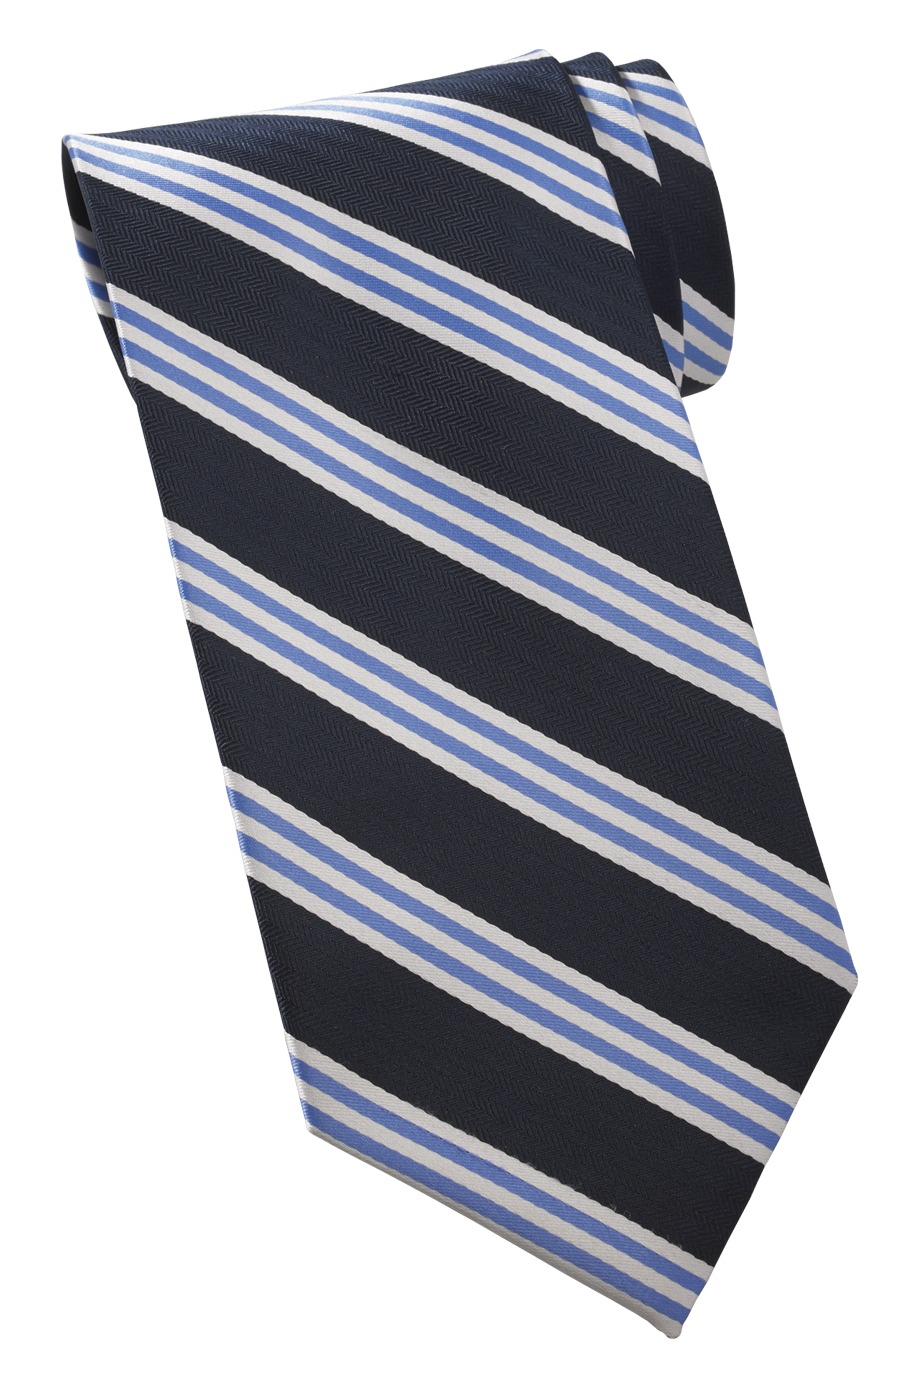 Edwards Garment QS00 - Quint Stripe Tie